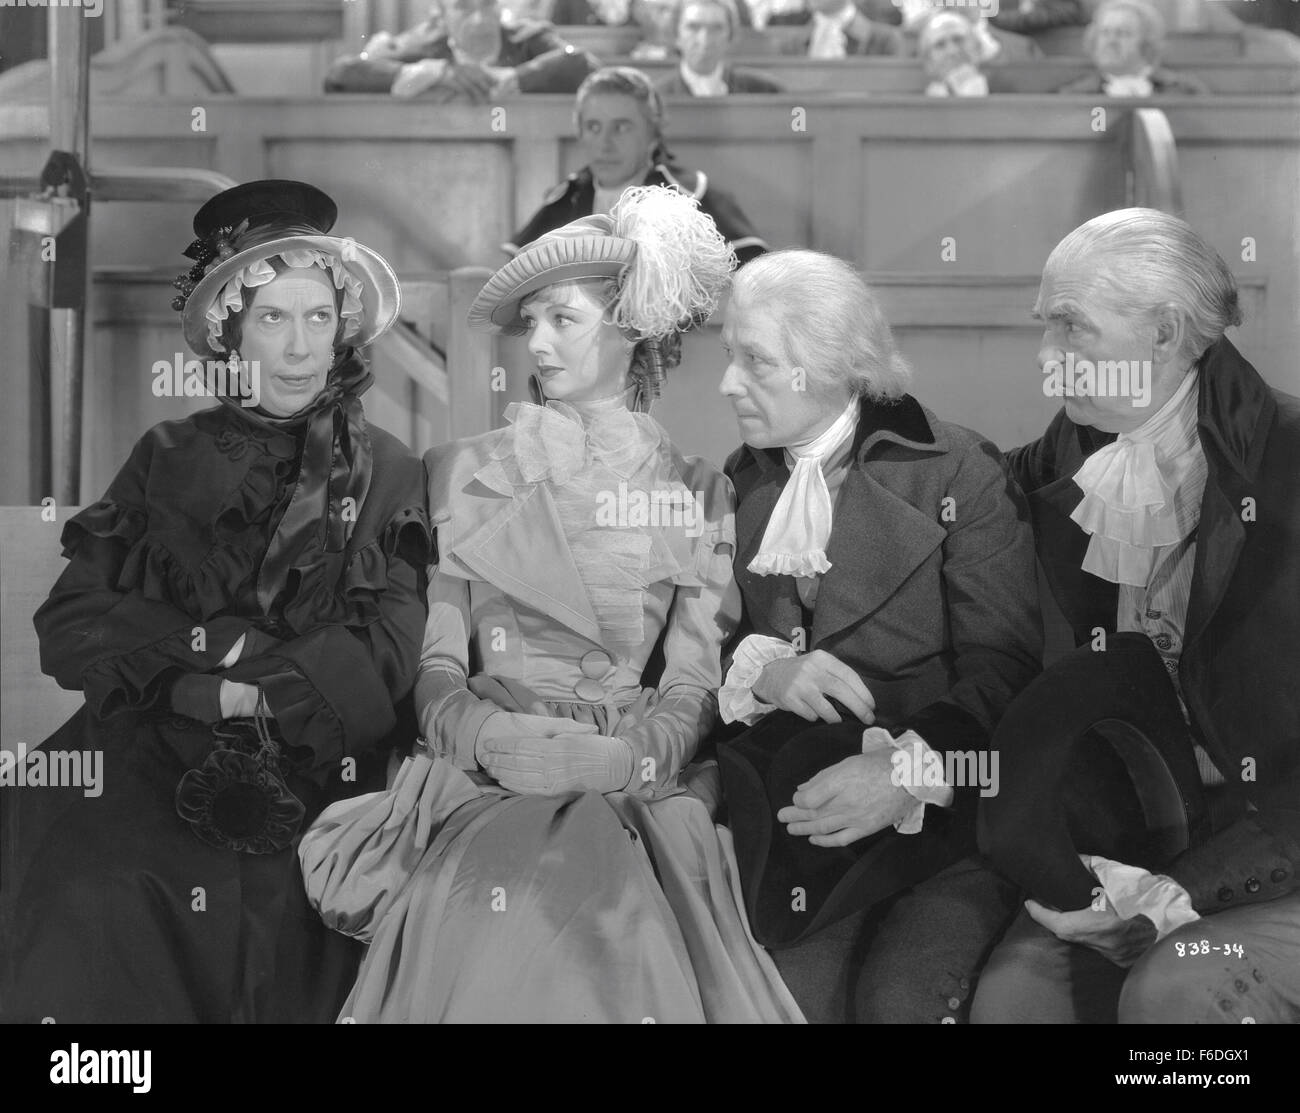 Allan as lucie manette colman had long wanted to play sydney car - Studio Metro Goldwyn Mayer Mgm Plot An Elaborate Adaptation Of Dickens Classic Tale Of The French Revolution Dissipated Lawyer Sydney Carton Defends